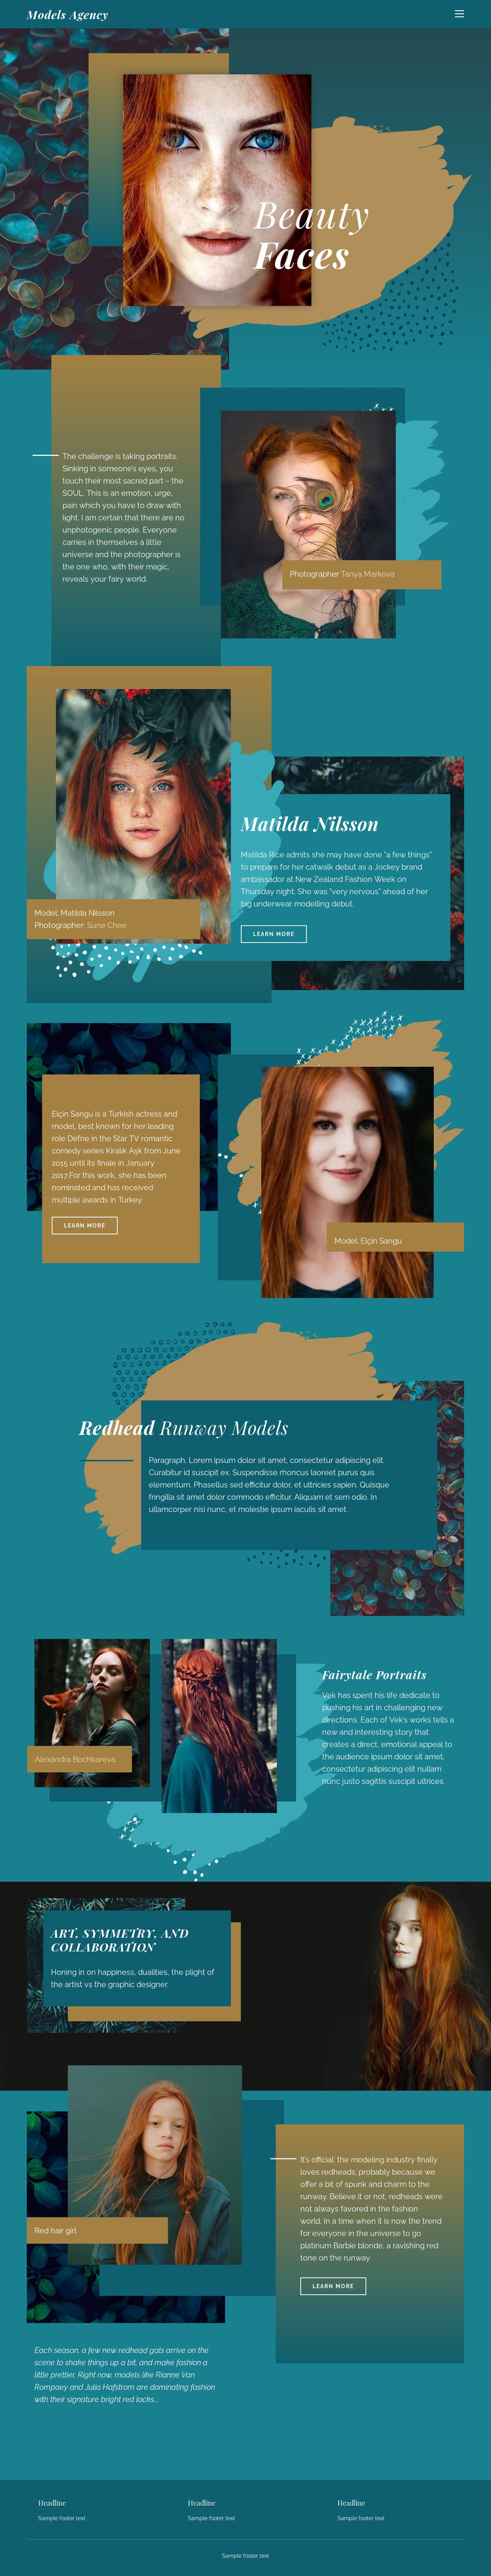 Faces of modern fashion Web Page Design